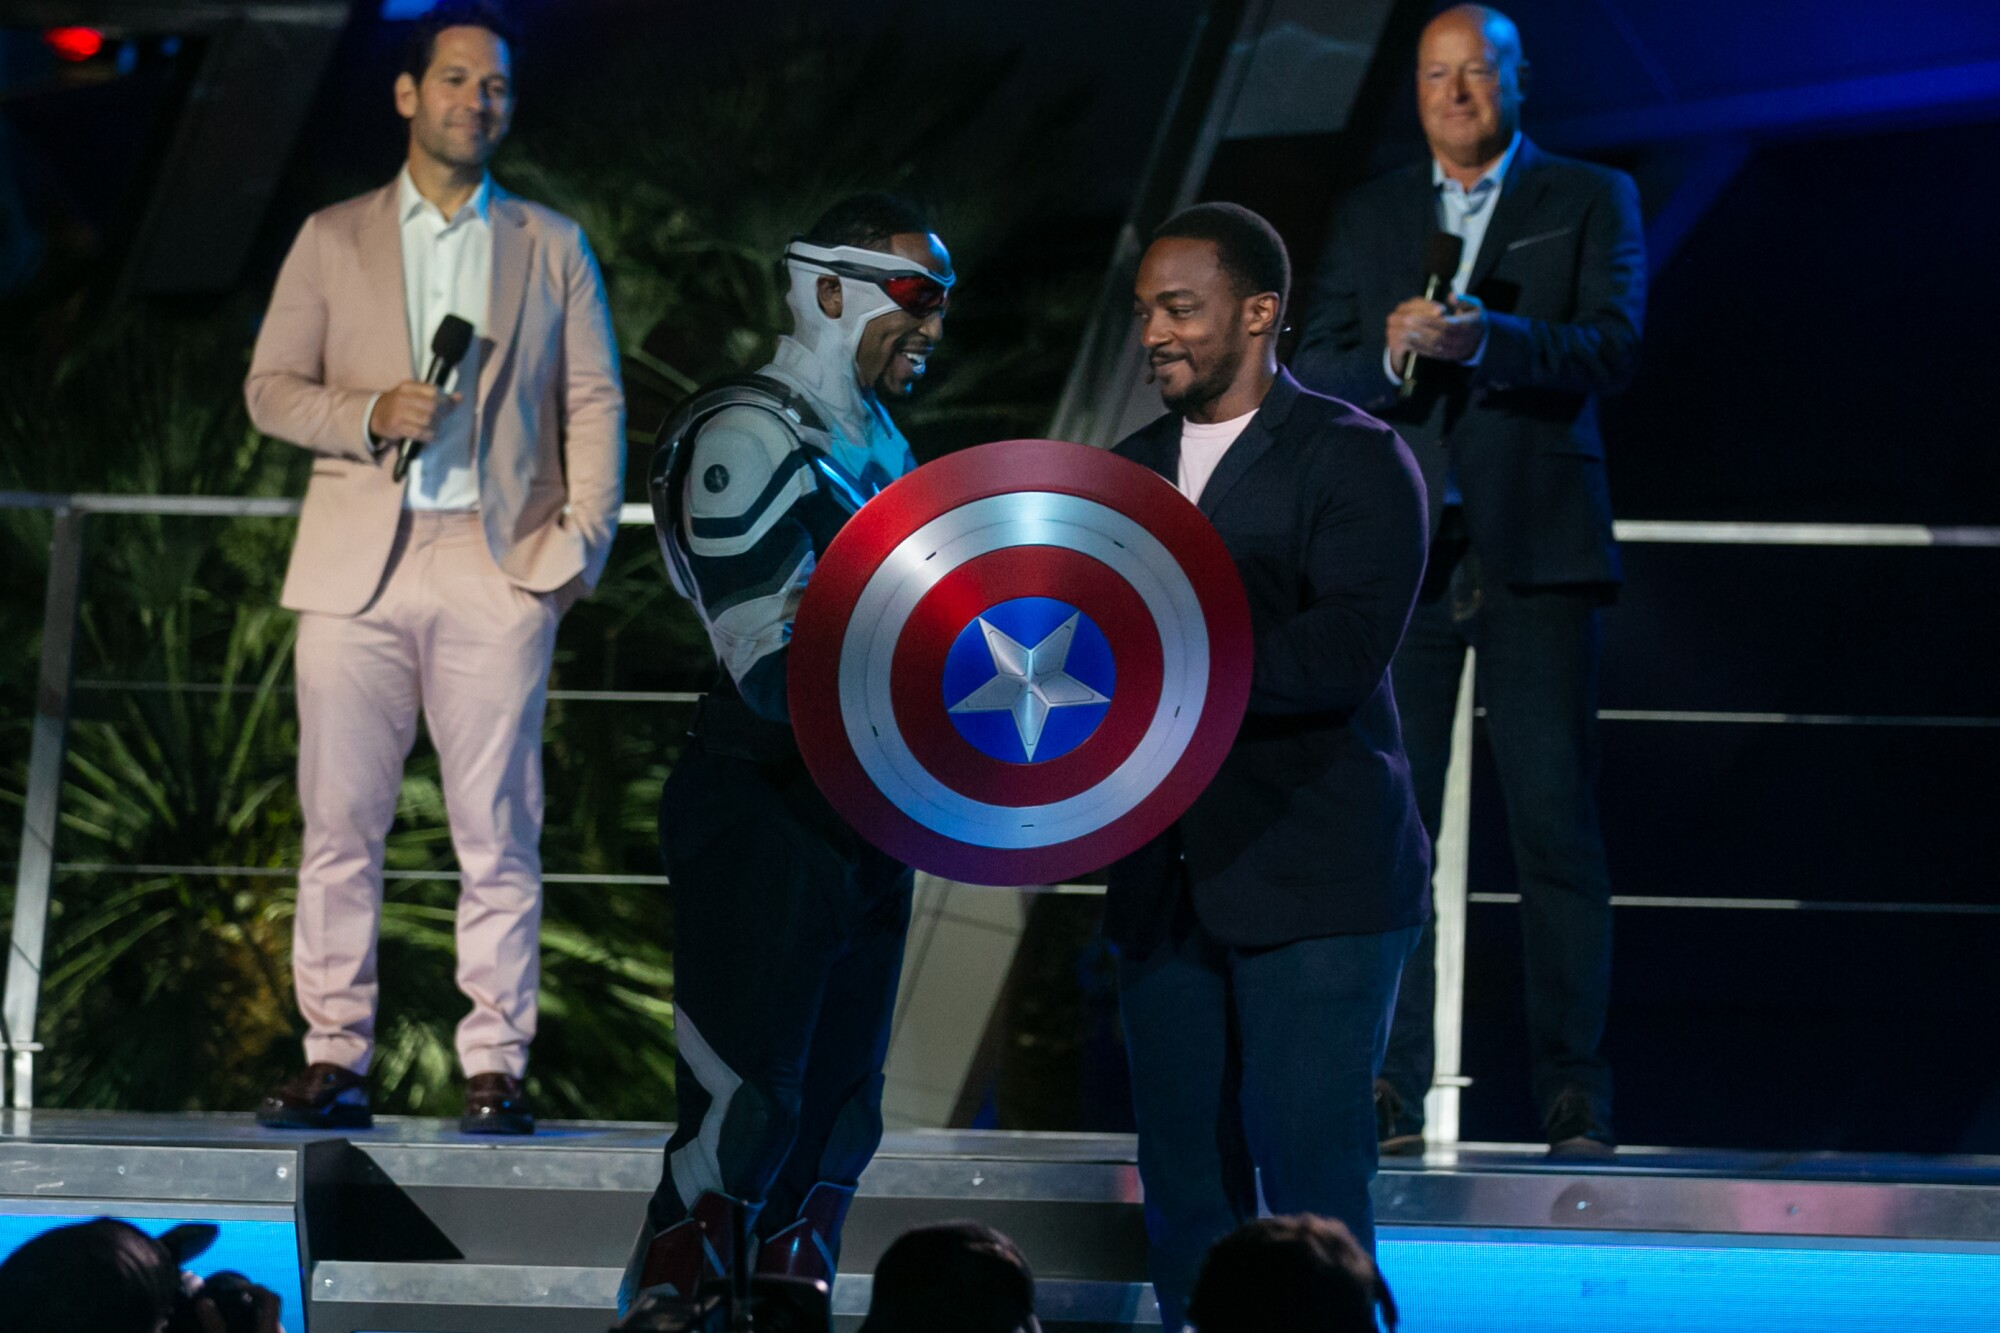 A smiling Anthony Mackie hands a Captain America shield to a Disney actor as Paul Rudd and a Disney executive look on.